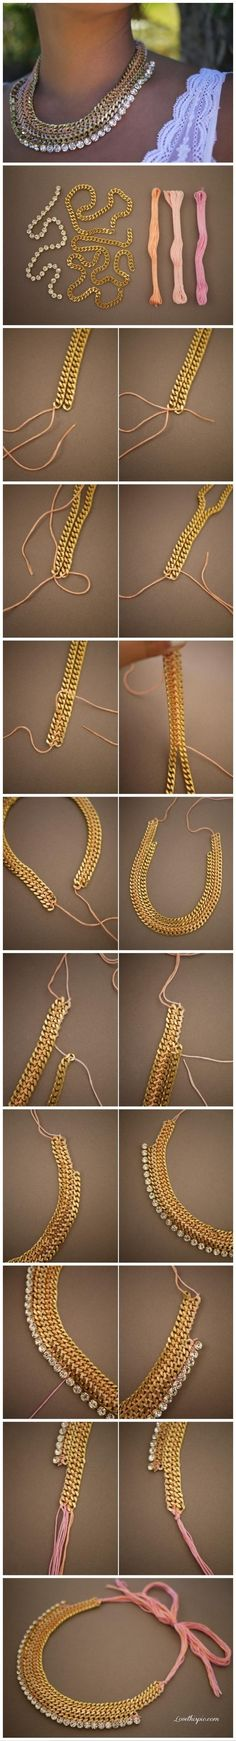 DIY Necklaces Pictures, Photos, and Images for Facebook, Tumblr, Pinterest, and Twitter